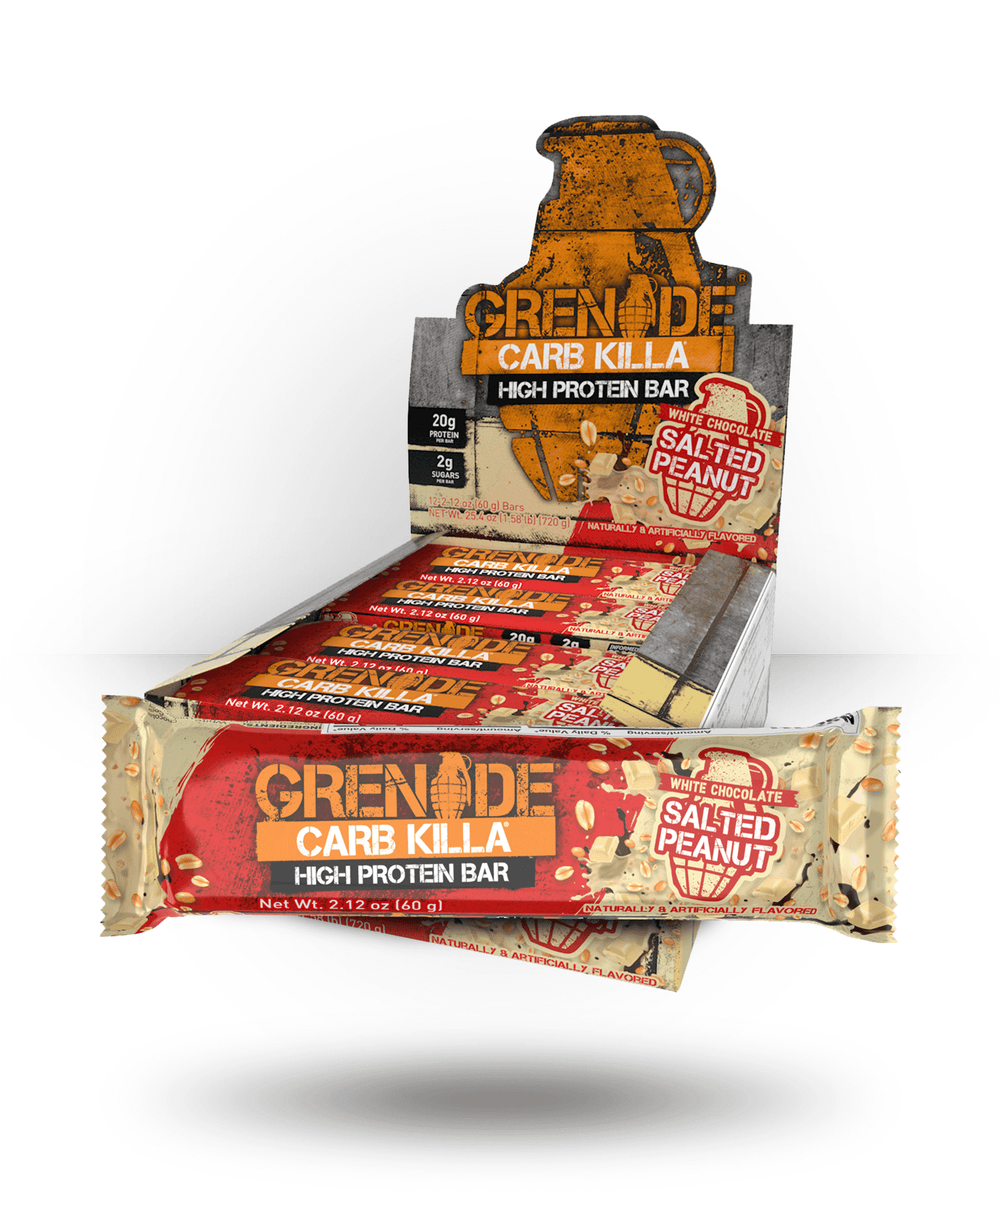 Grenade Carb Killa Bar White Chocolate Salted Peanut, 12 Bars